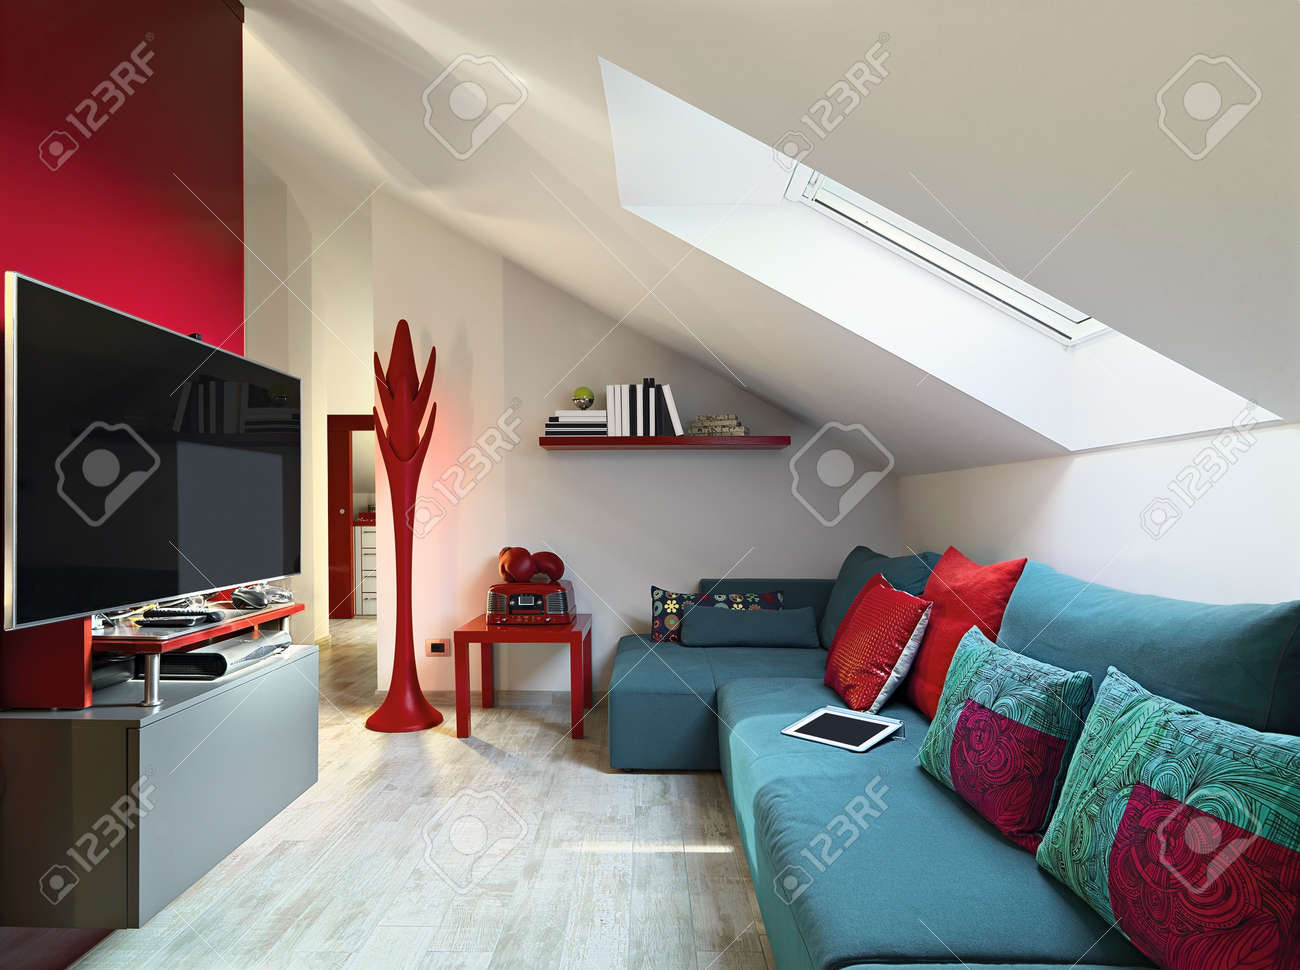 Blue sofa in a modern living room on attic with tile floor stock blue sofa in a modern living room on attic with tile floor stock photo 25456555 dailygadgetfo Images